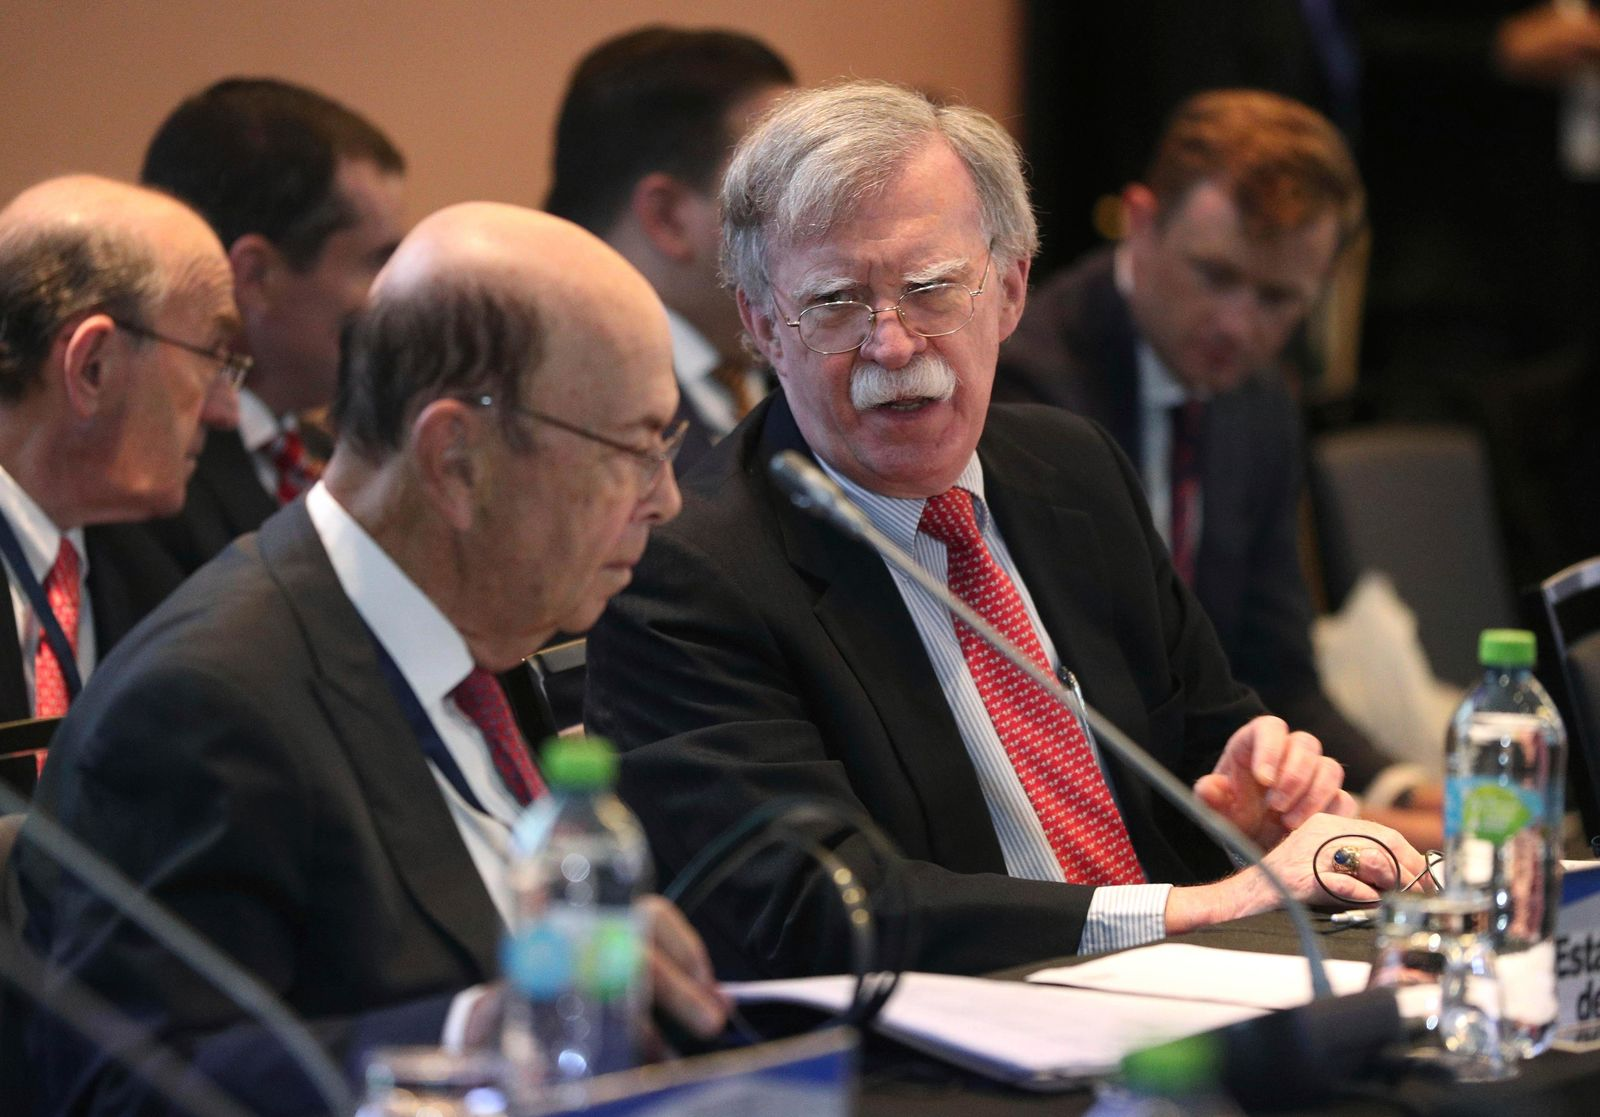 U.S. National security adviser John Bolton, right, speaks with U.S. Commerce Secretary Wilbur Ross during a conference of more than 50 nations that largely support Venezuelan opposition leader Juan Guaido in Lima, Peru, Tuesday, Aug. 6, 2019. The Trump administration froze all Venezuelan government assets in a dramatic escalation of tensions with Nicolas Maduro that places his socialist administration alongside a short list of adversaries from Cuba, North Korea, Syria and Iran that have been targeted by such aggressive U.S. actions. (AP Photo/Martin Mejia)